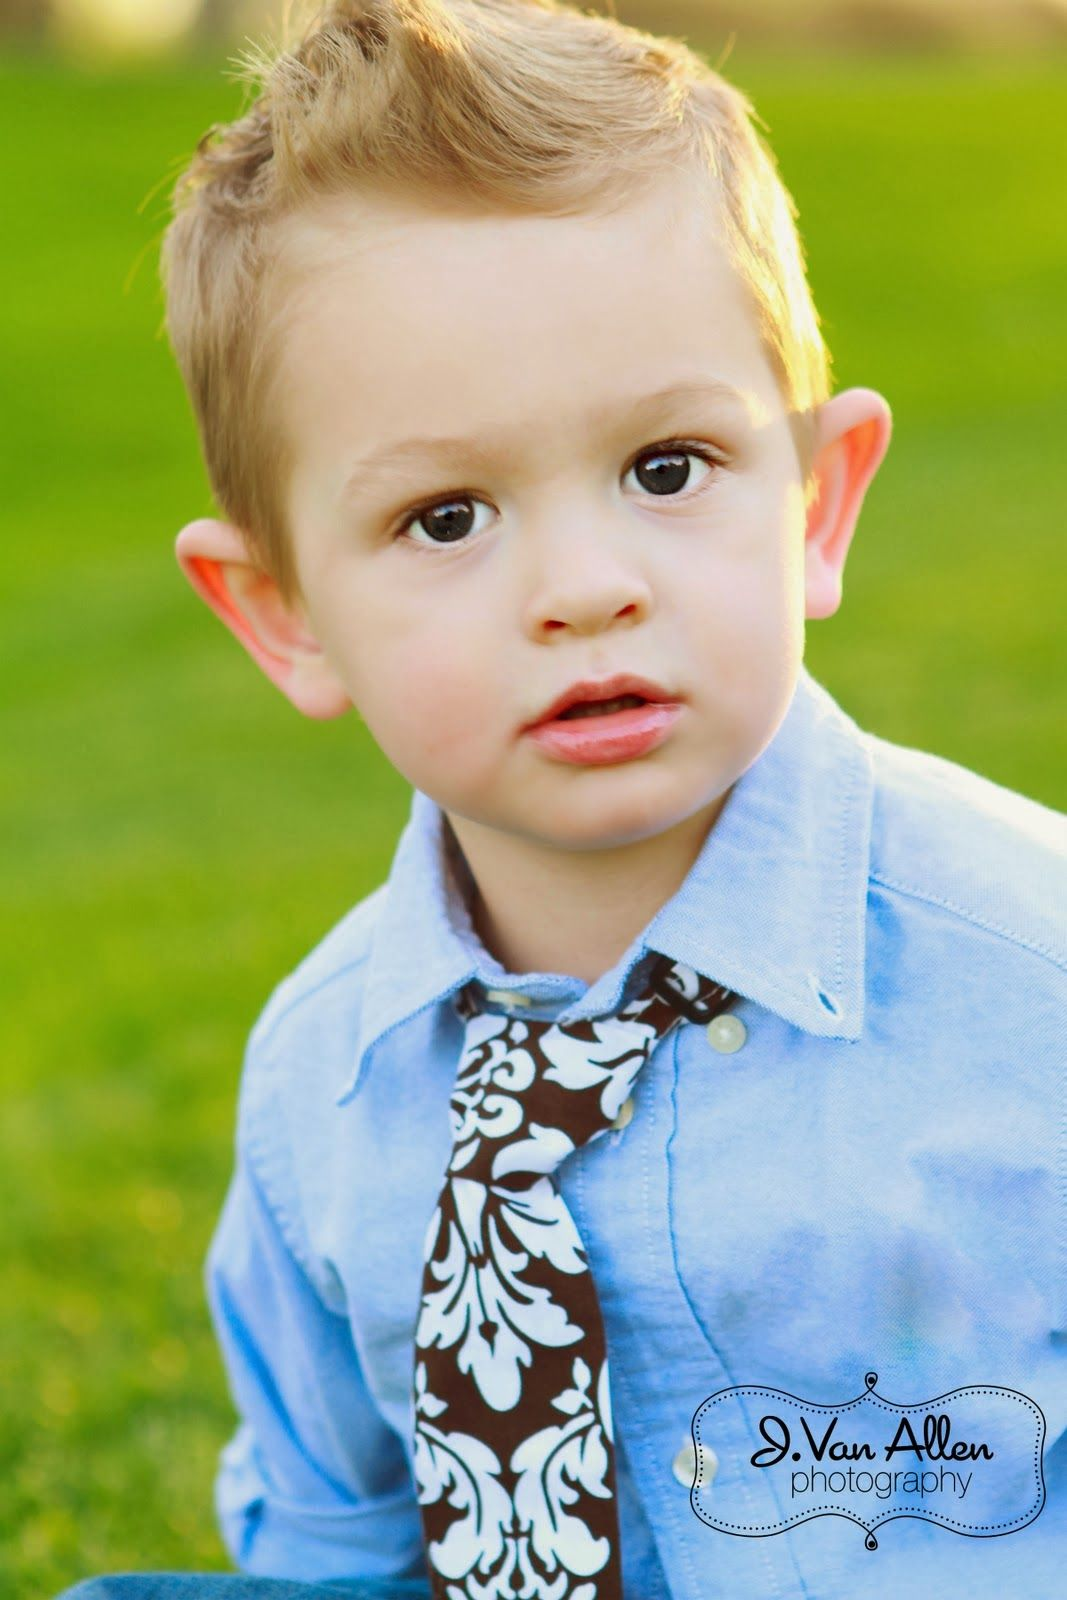 Cute Baby Boy Pictures For Facebook Profile - Cute Baby Profile Picture For Facebook For Boys , HD Wallpaper & Backgrounds